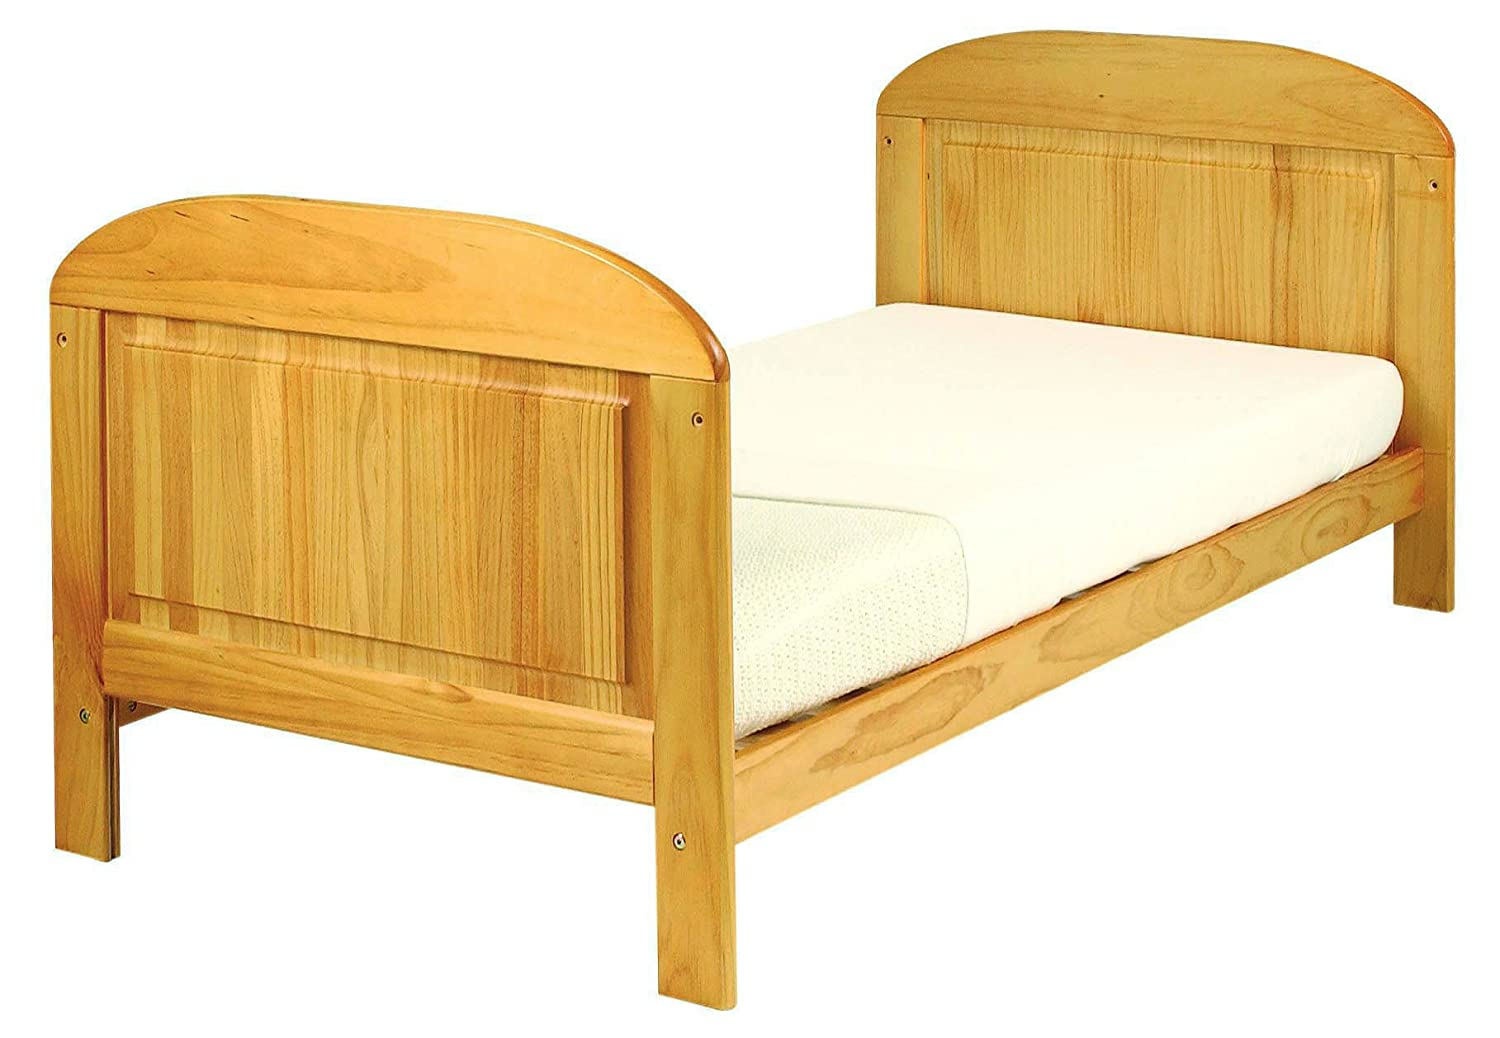 East Coast Angelina Cot Bed (Antique) 5693